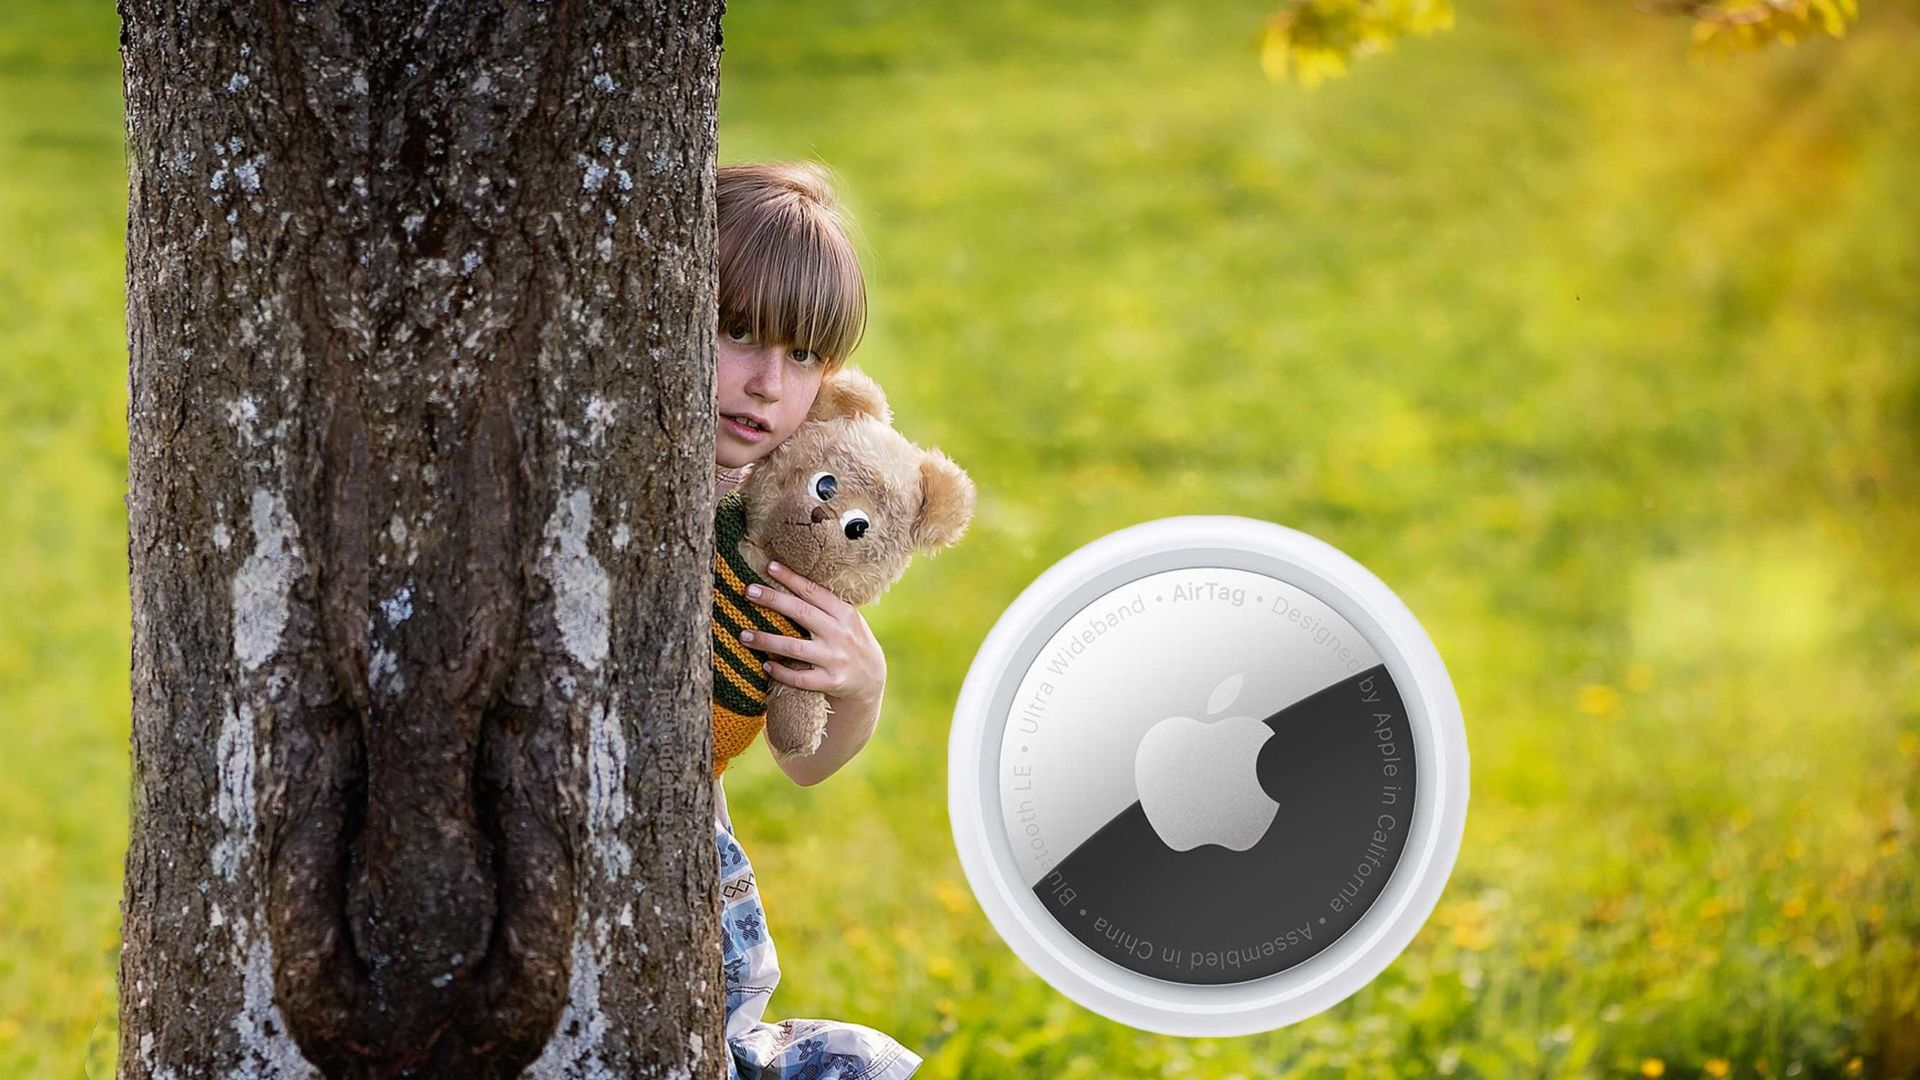 Airtag: High-Tech Game Of &Quot;Hot Or Cold&Quot; Or &Quot;Hide-And-Go-Seek&Quot;